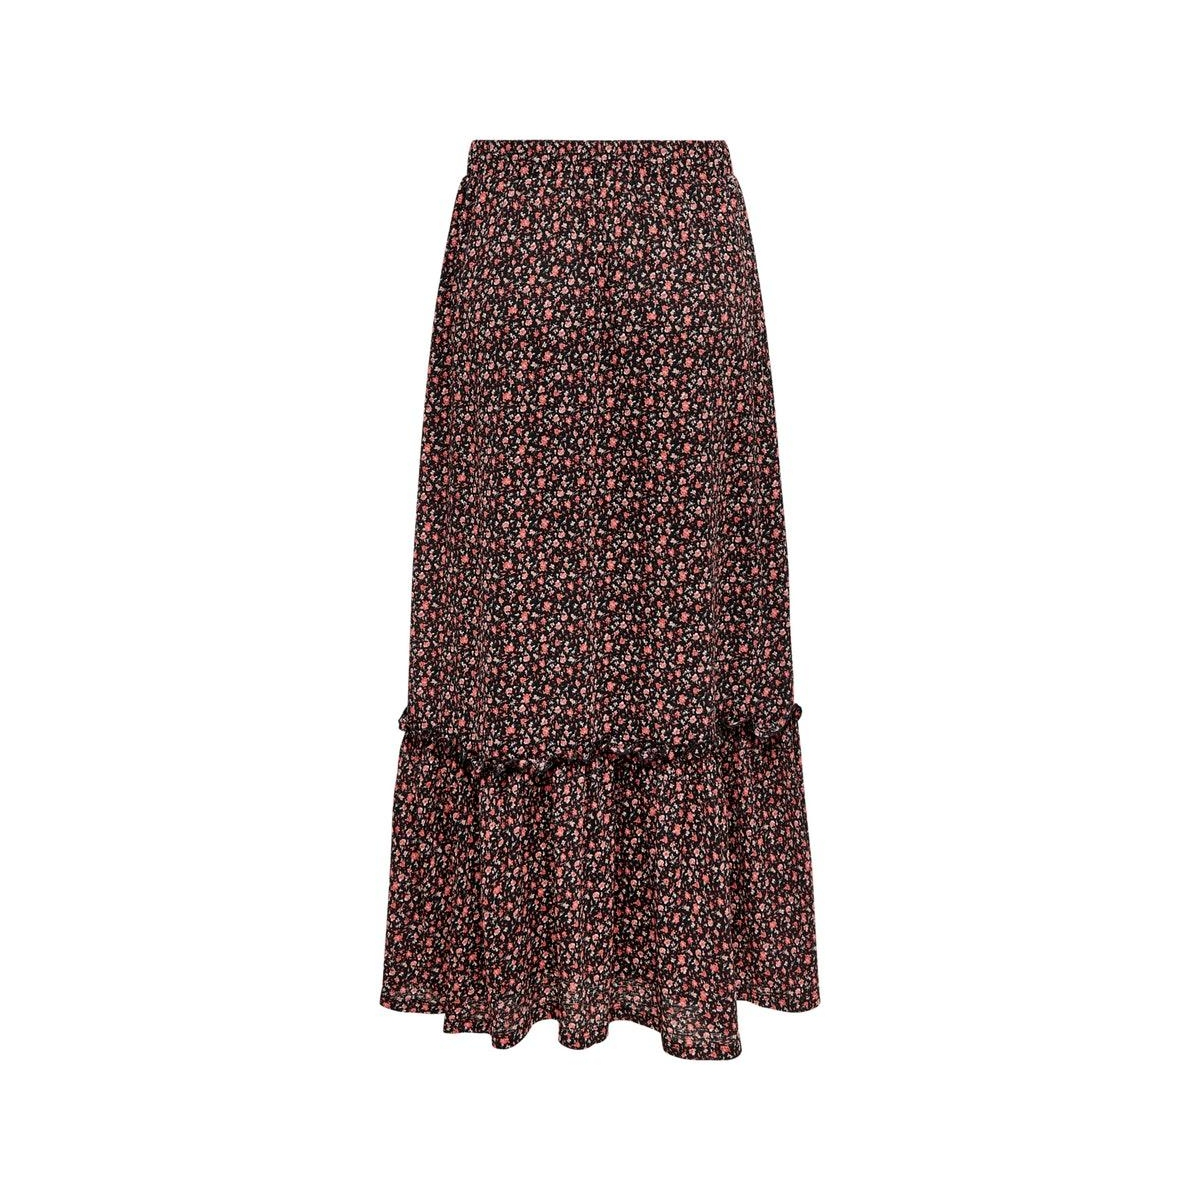 onlpella skirt jrs 15202185 only rok black/route dits